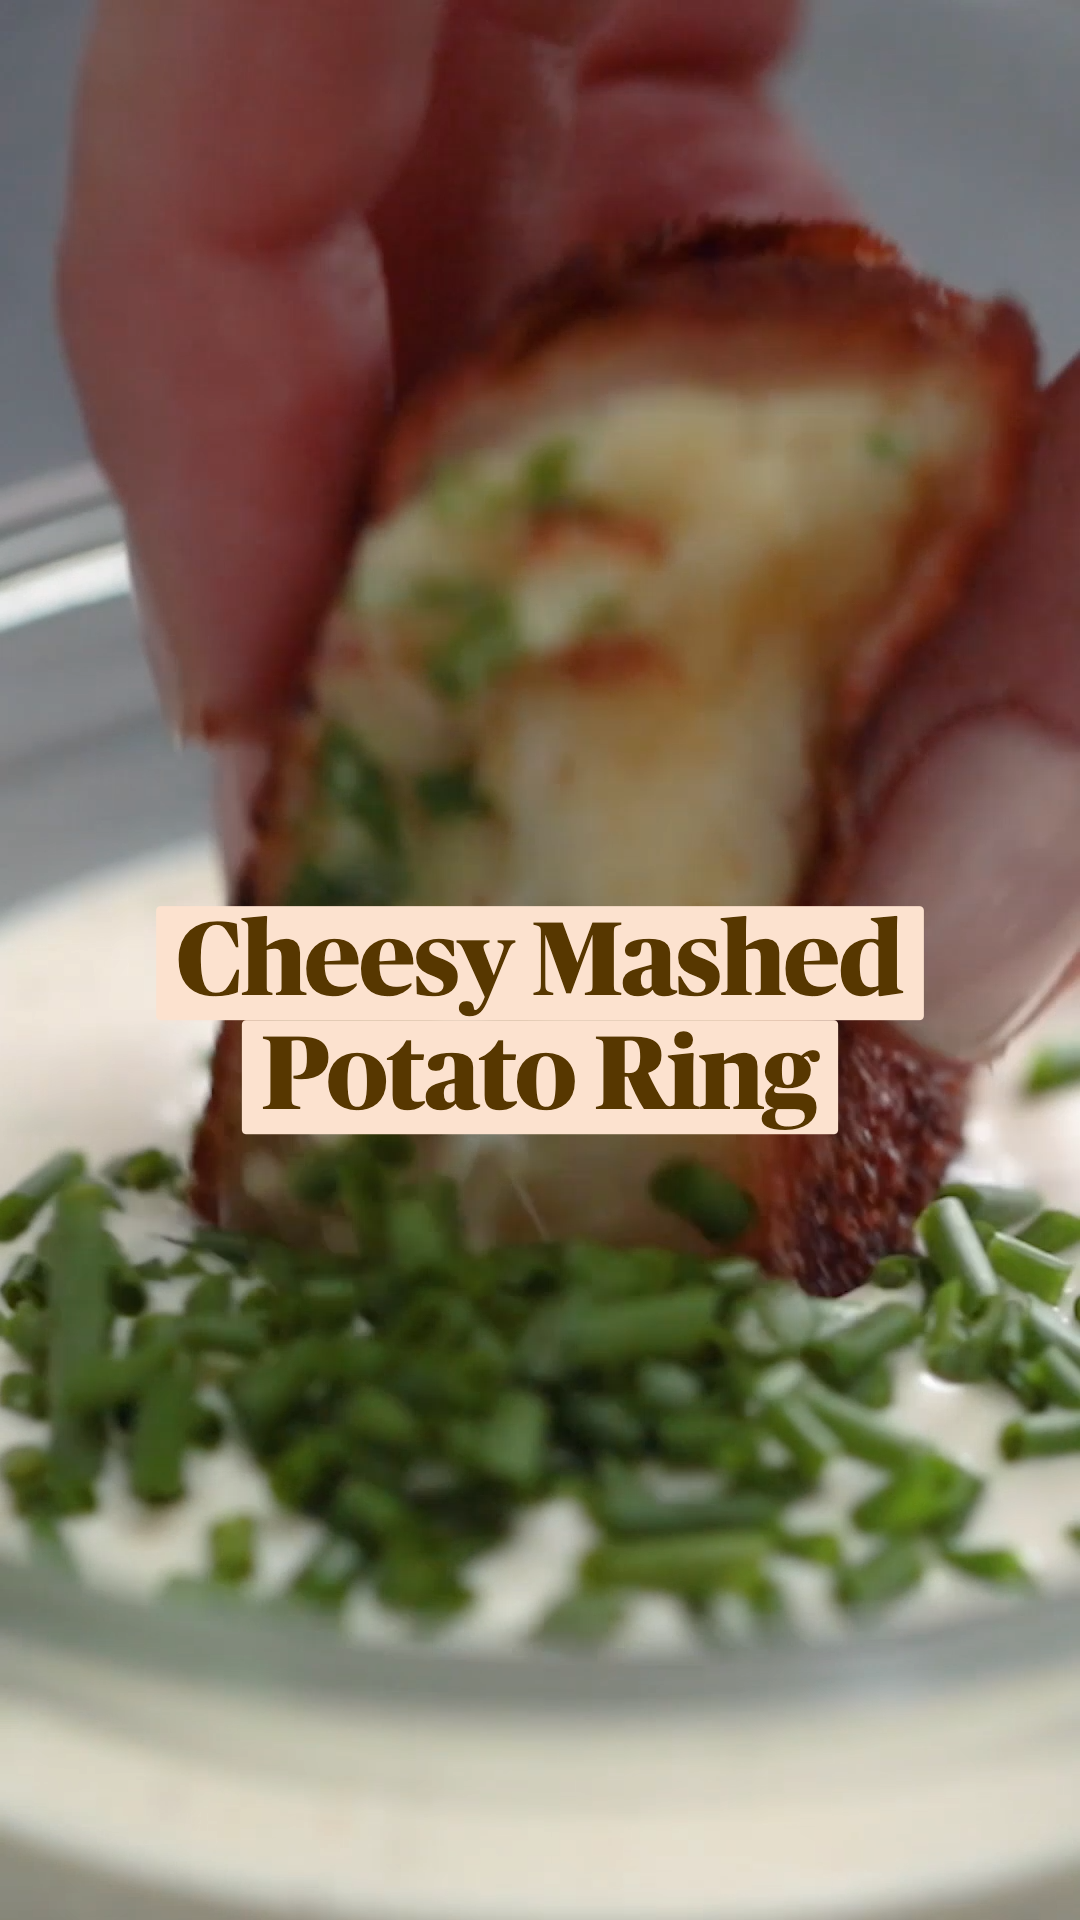 Cheesy Mashed Potato Ring